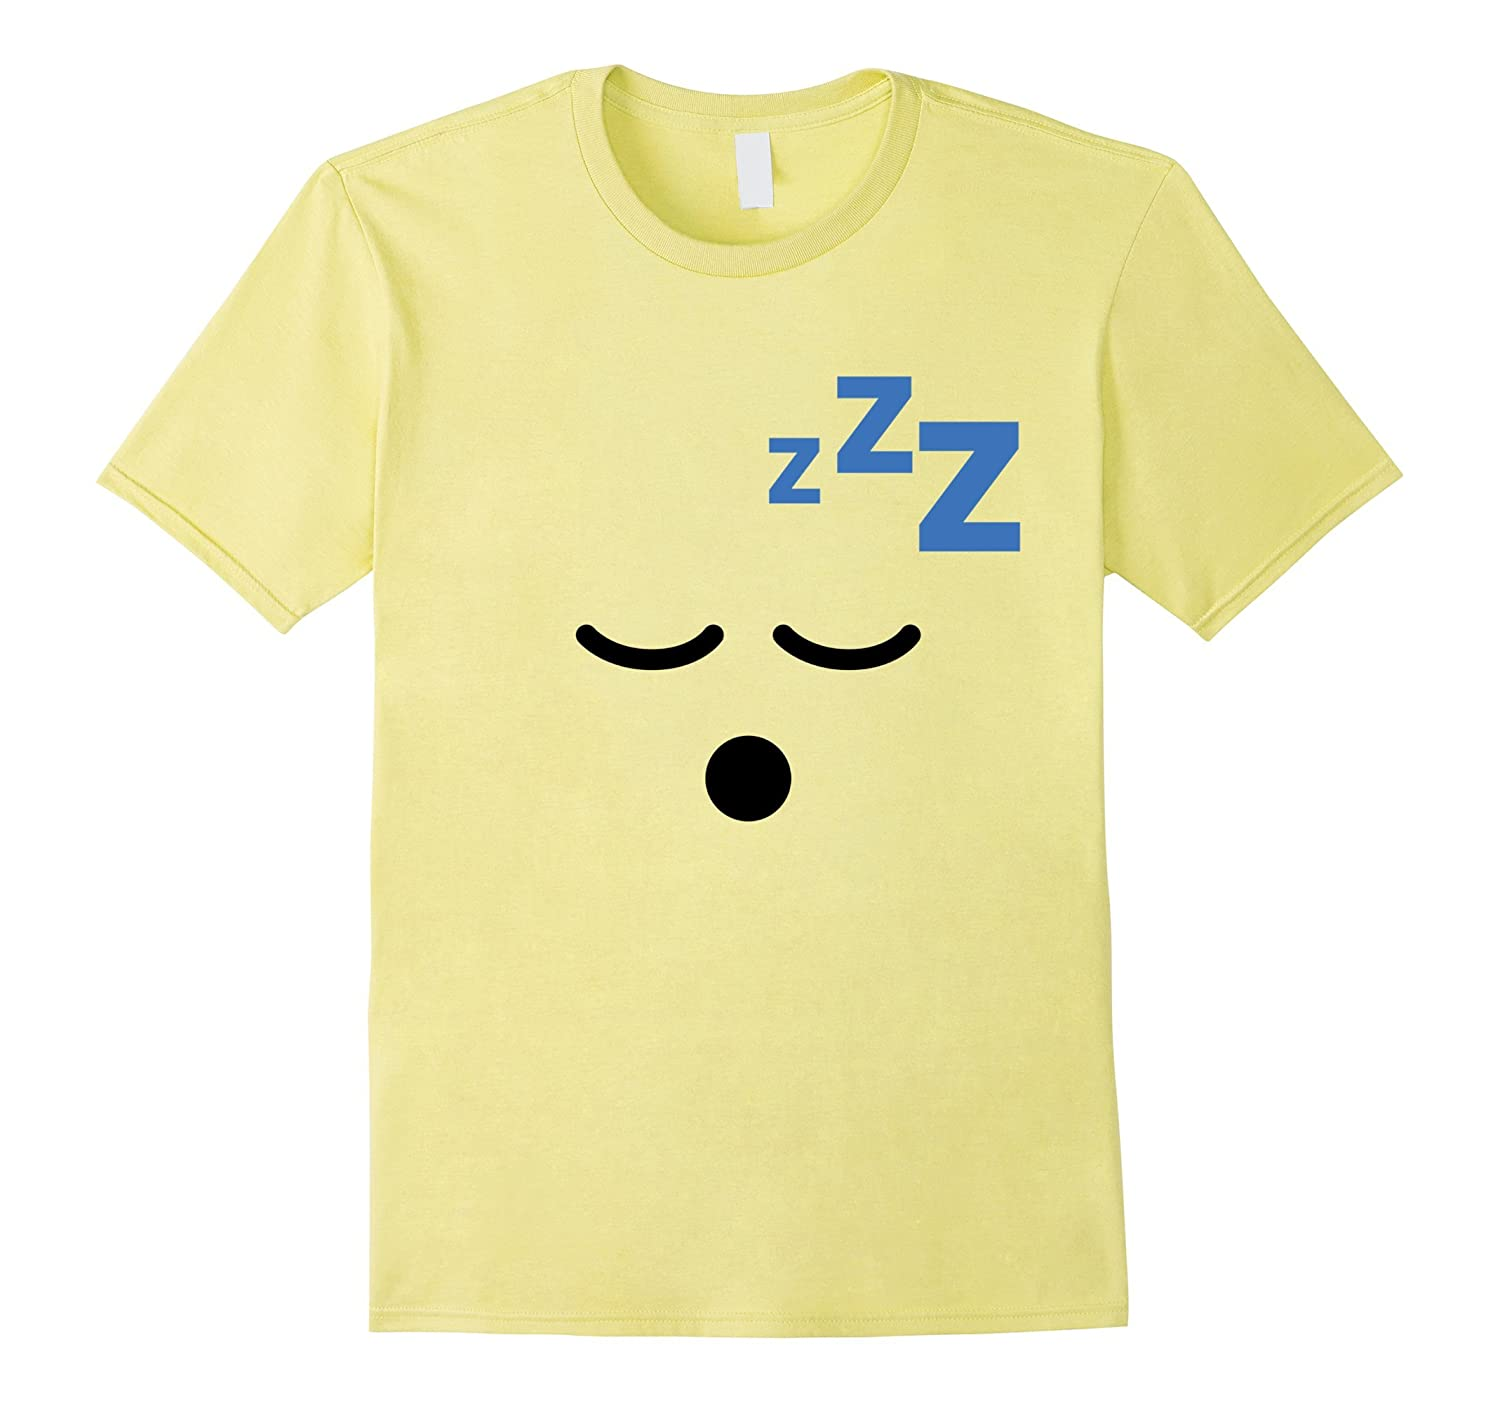 Zzz Sleeping Snoring Face Emoji T Shirt Costume-FL